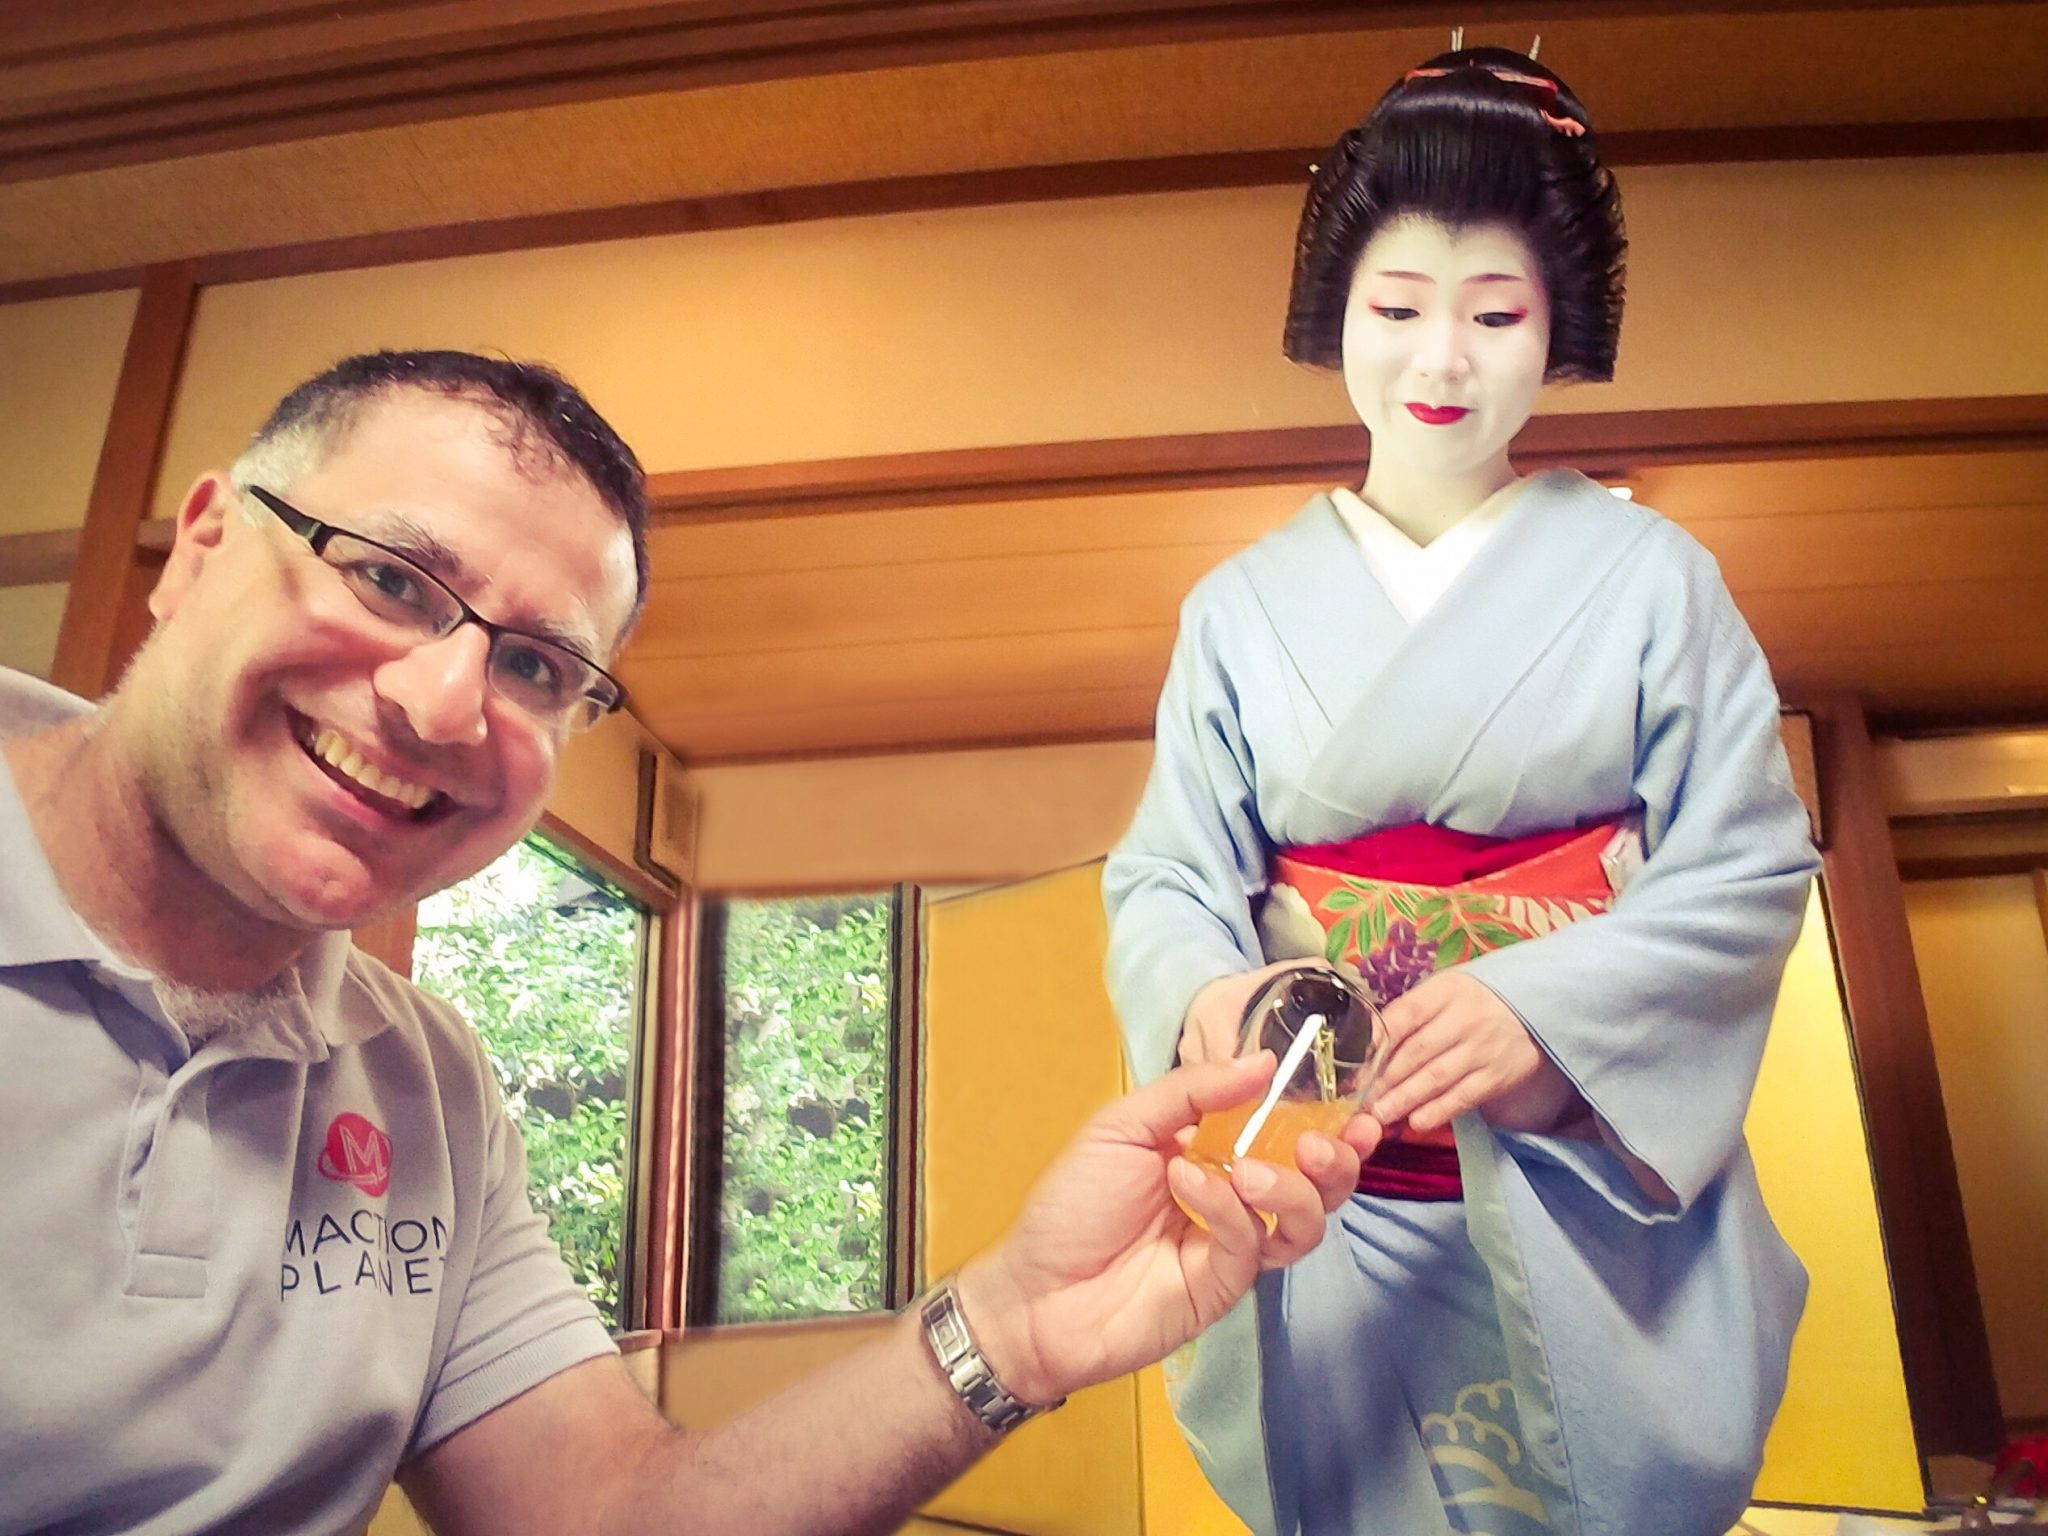 Mac, Founder and Lead Guide of Maction Planet, drinking with a geisha in Gion, Kyoto